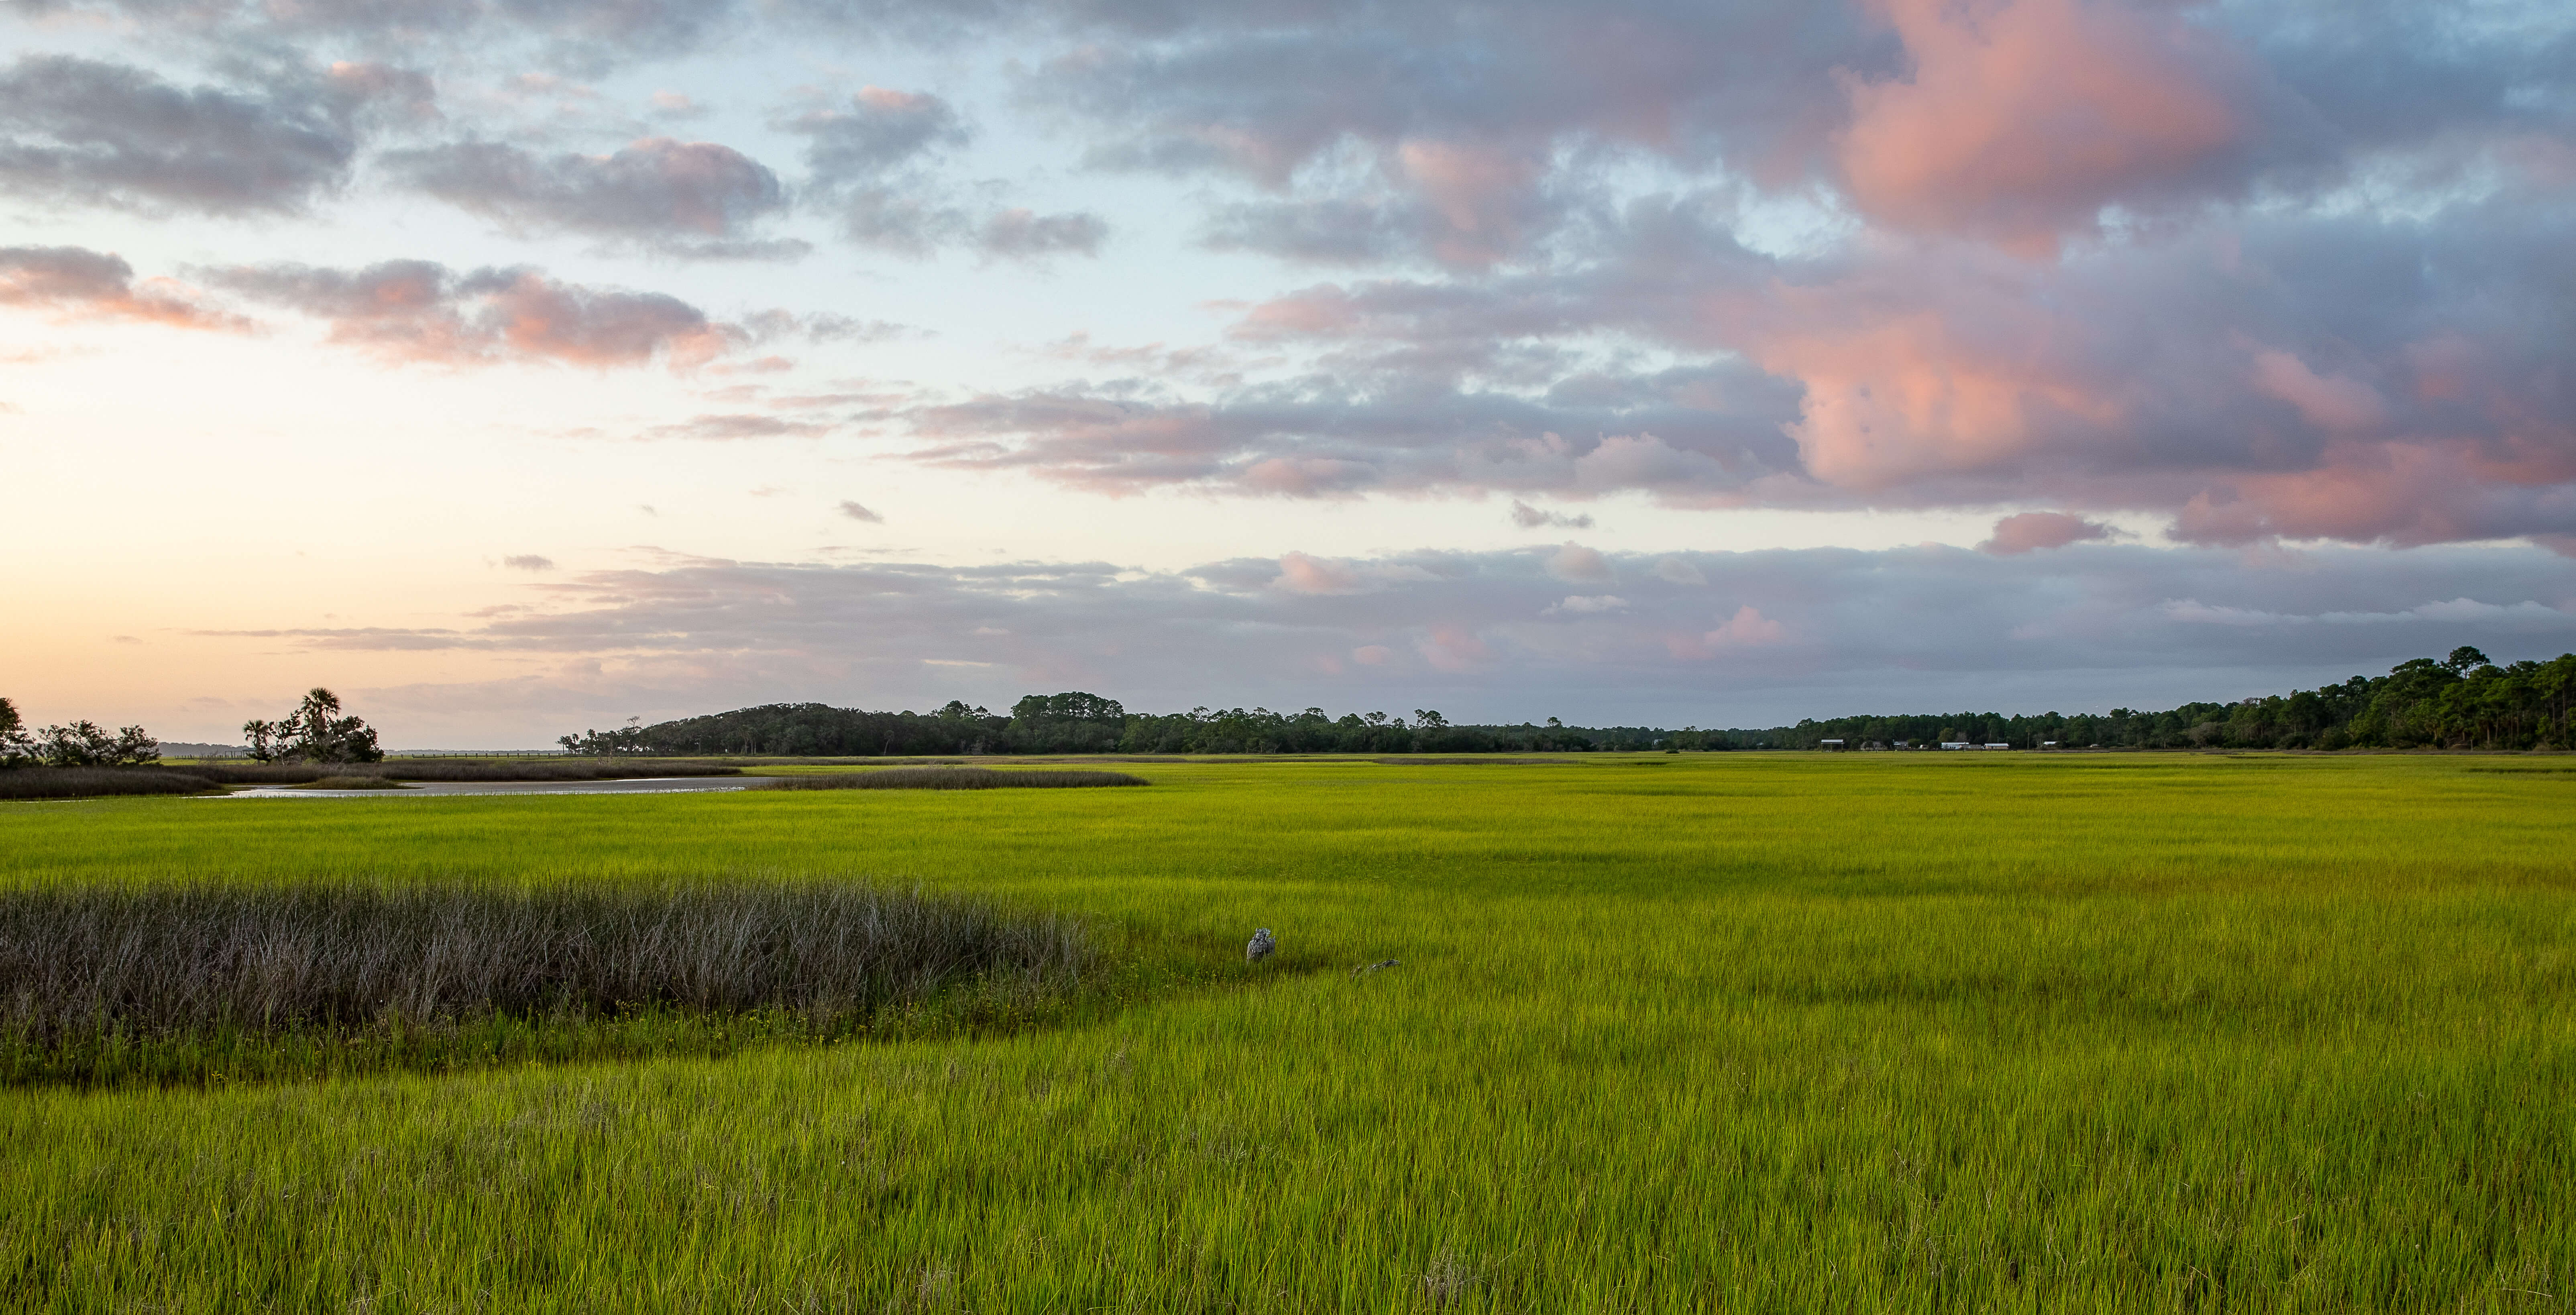 Florida grass growing season is in Spring, but typically can grow all year long in Florida.